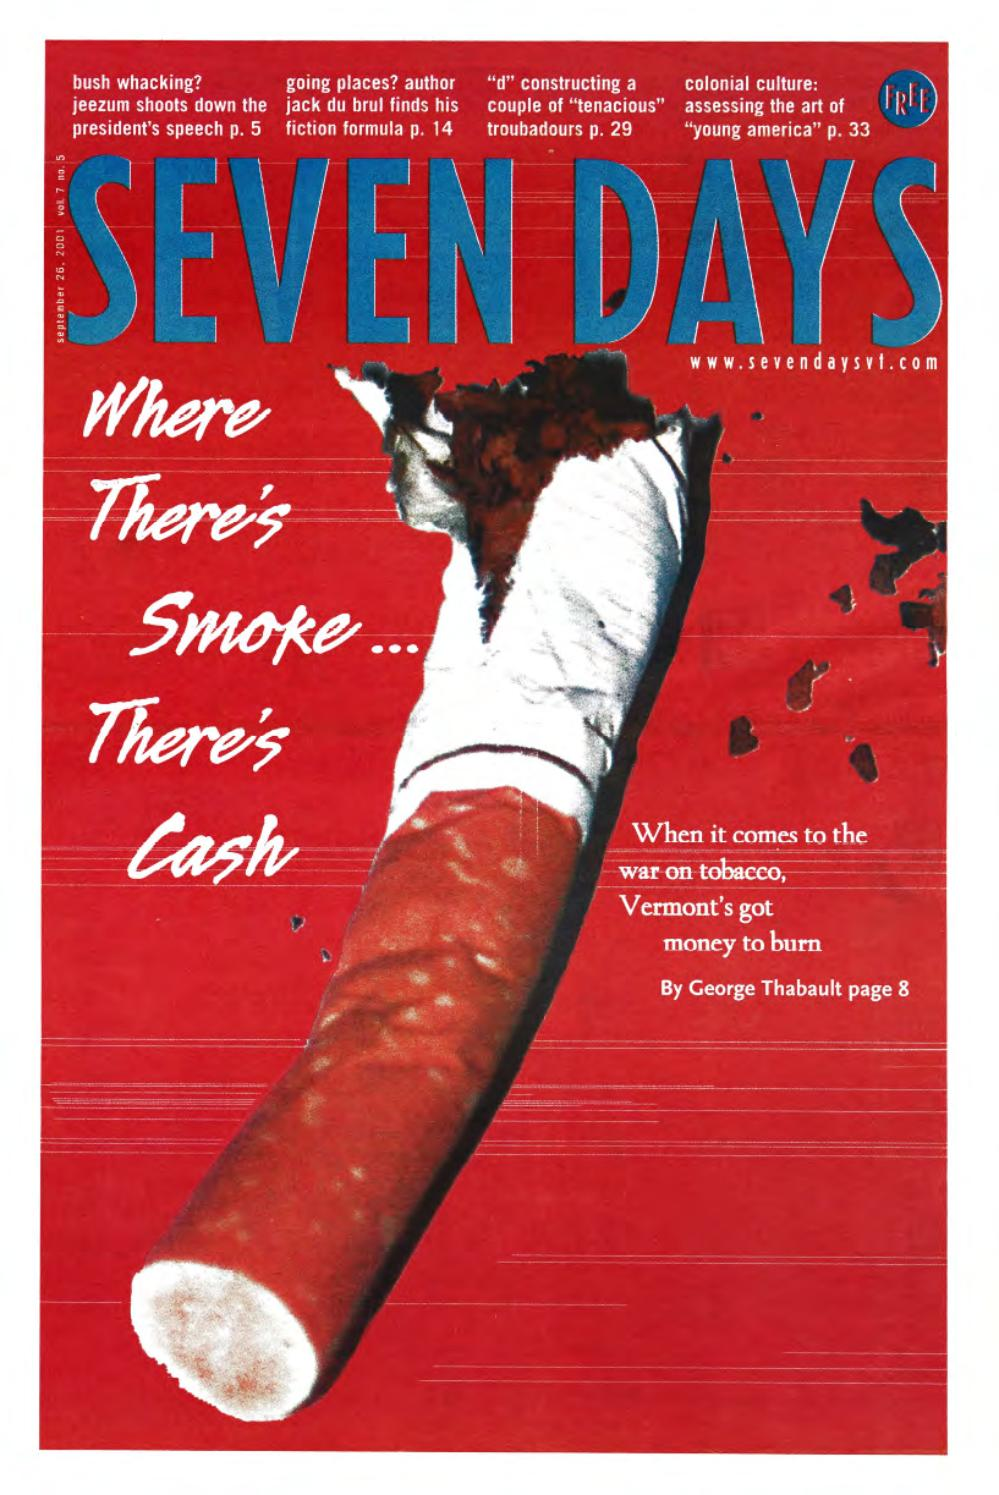 Seven Days September 26 2001 By Issuu 2humbucker 1 Vol 2 Tone Yke 5way Switch Wiring Guitarnutz